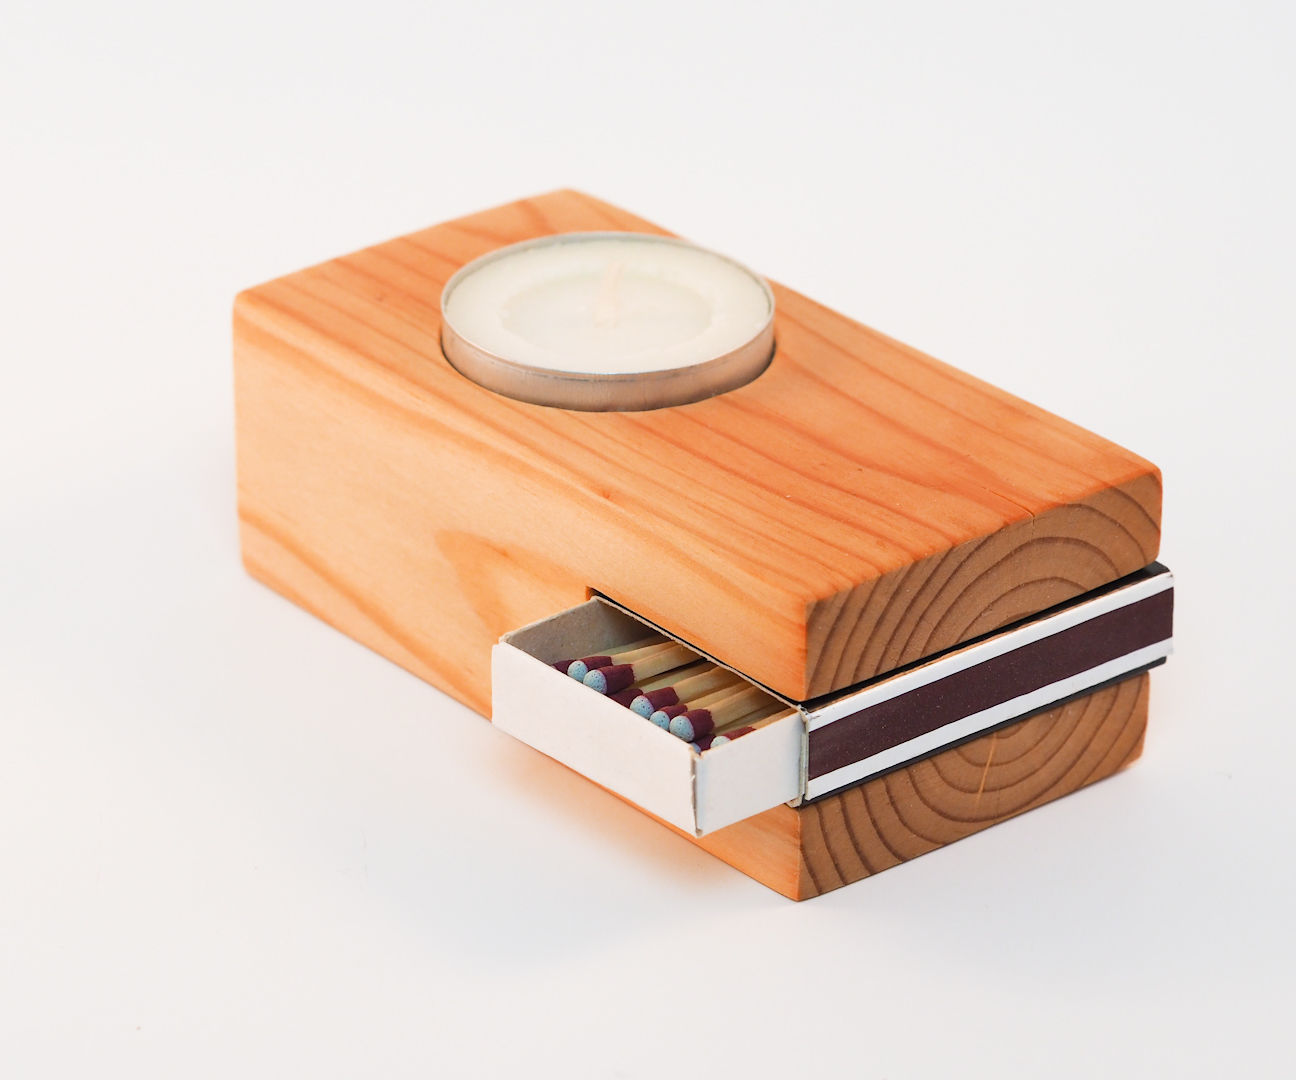 Simple Gifts You Can Make From Wood